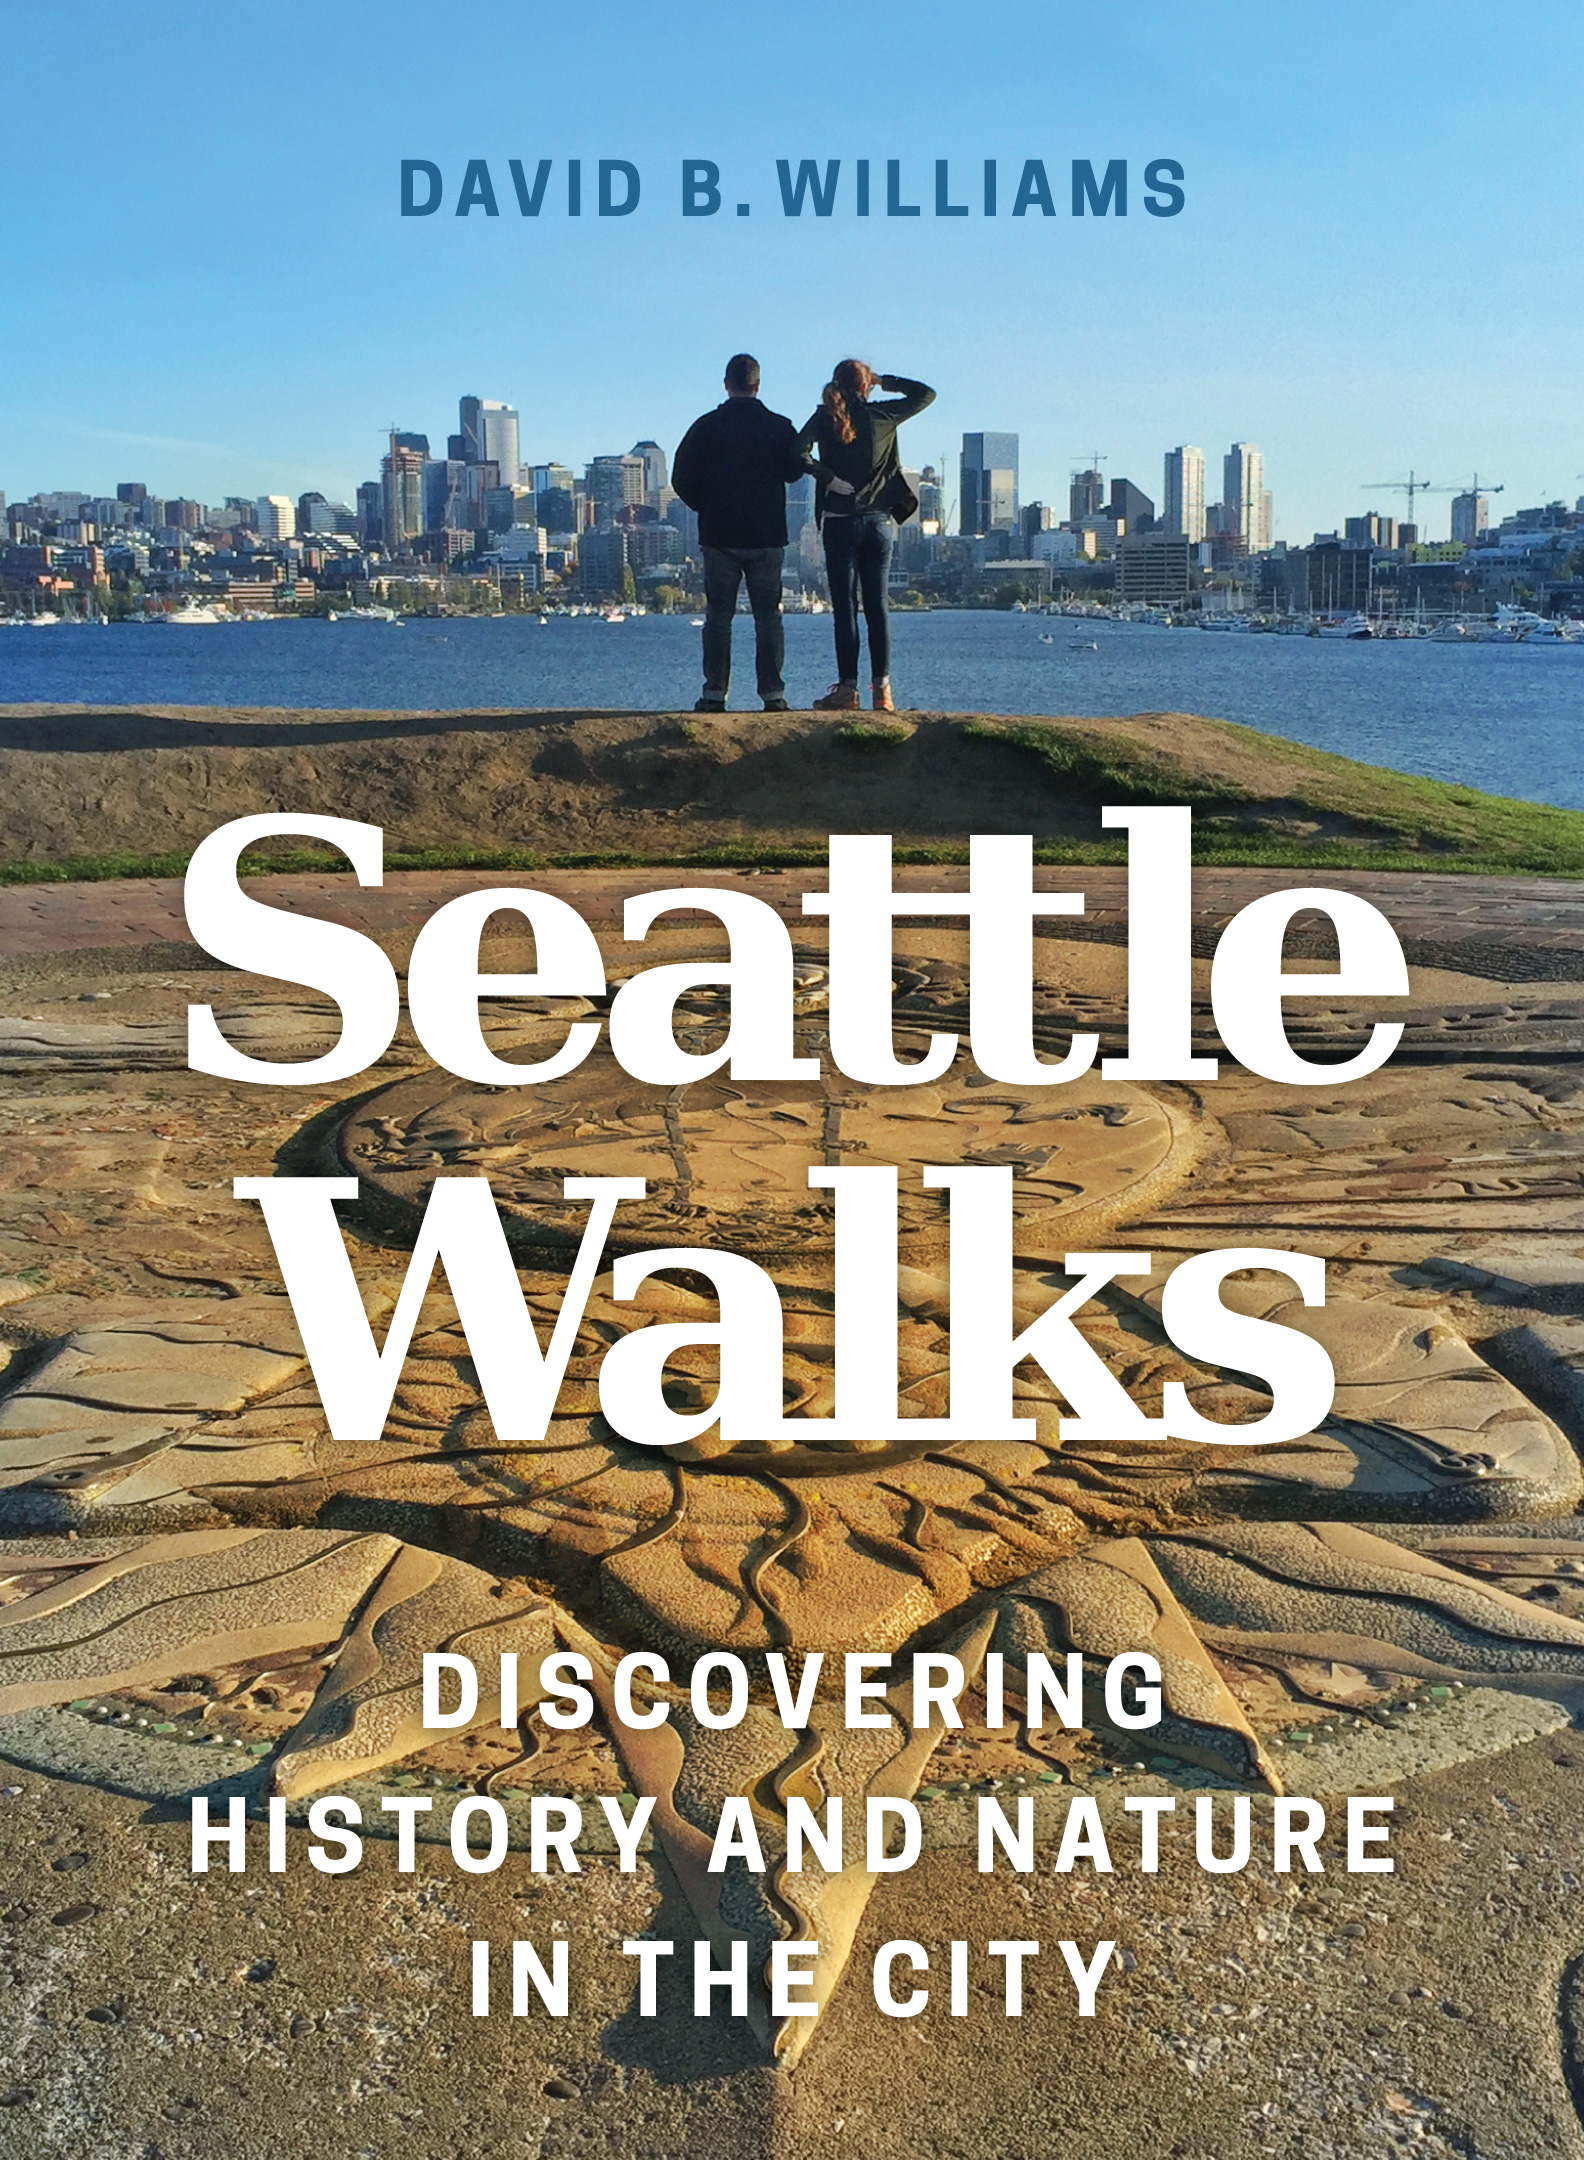 "#1. Seattle Walks by David B. Williams. ""In Seattle Walks, David B. Williams weaves together the history, natural history, and architecture of Seattle to paint a complex, nuanced, and fascinating story."" www.bookstore.washington.edu (Image: University of Washington Press)"